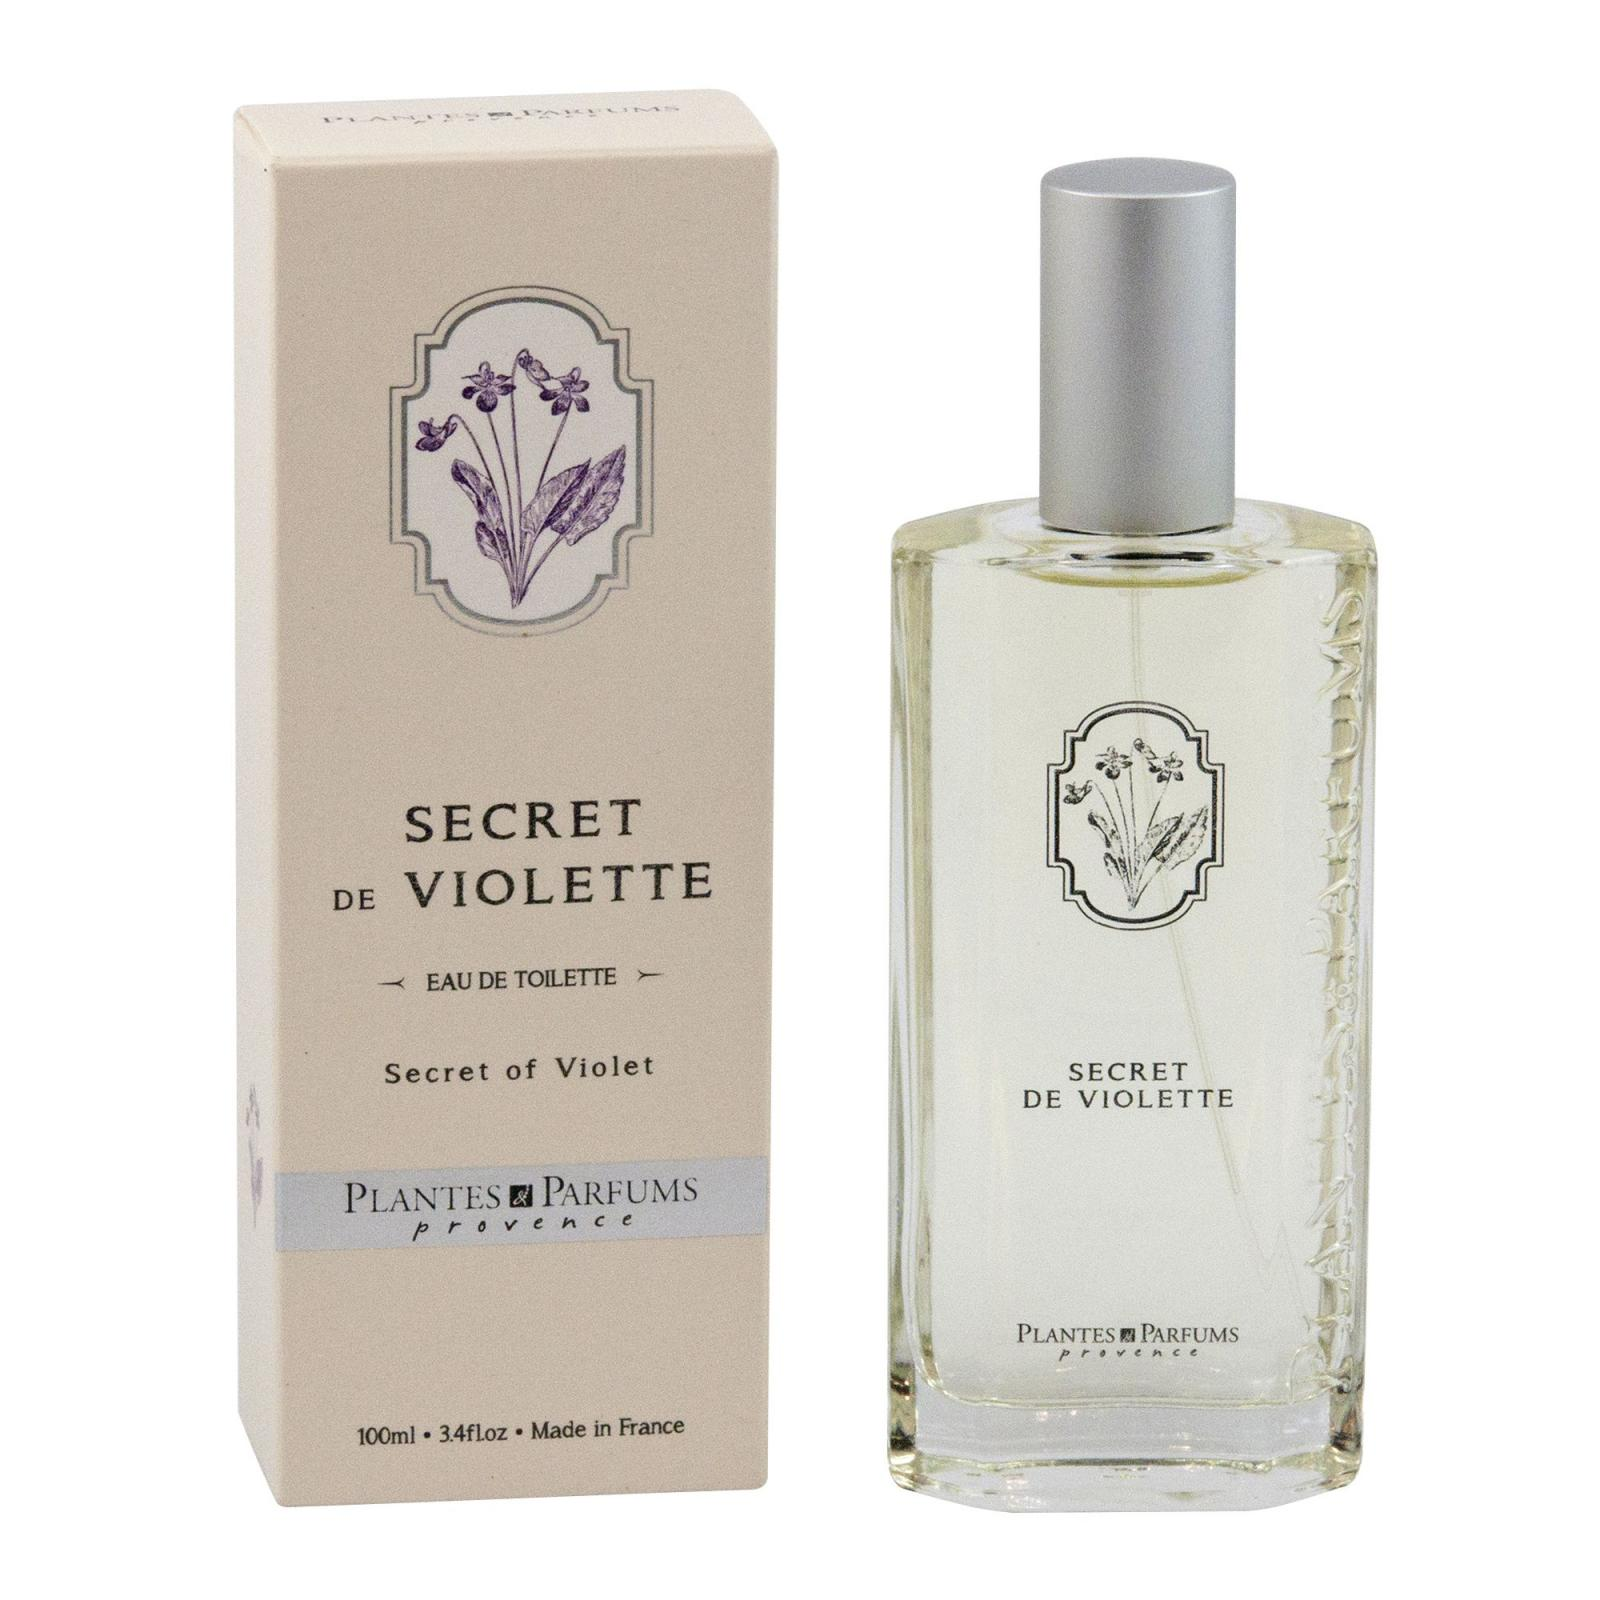 Plantes et Parfums EDT Secret de Violette